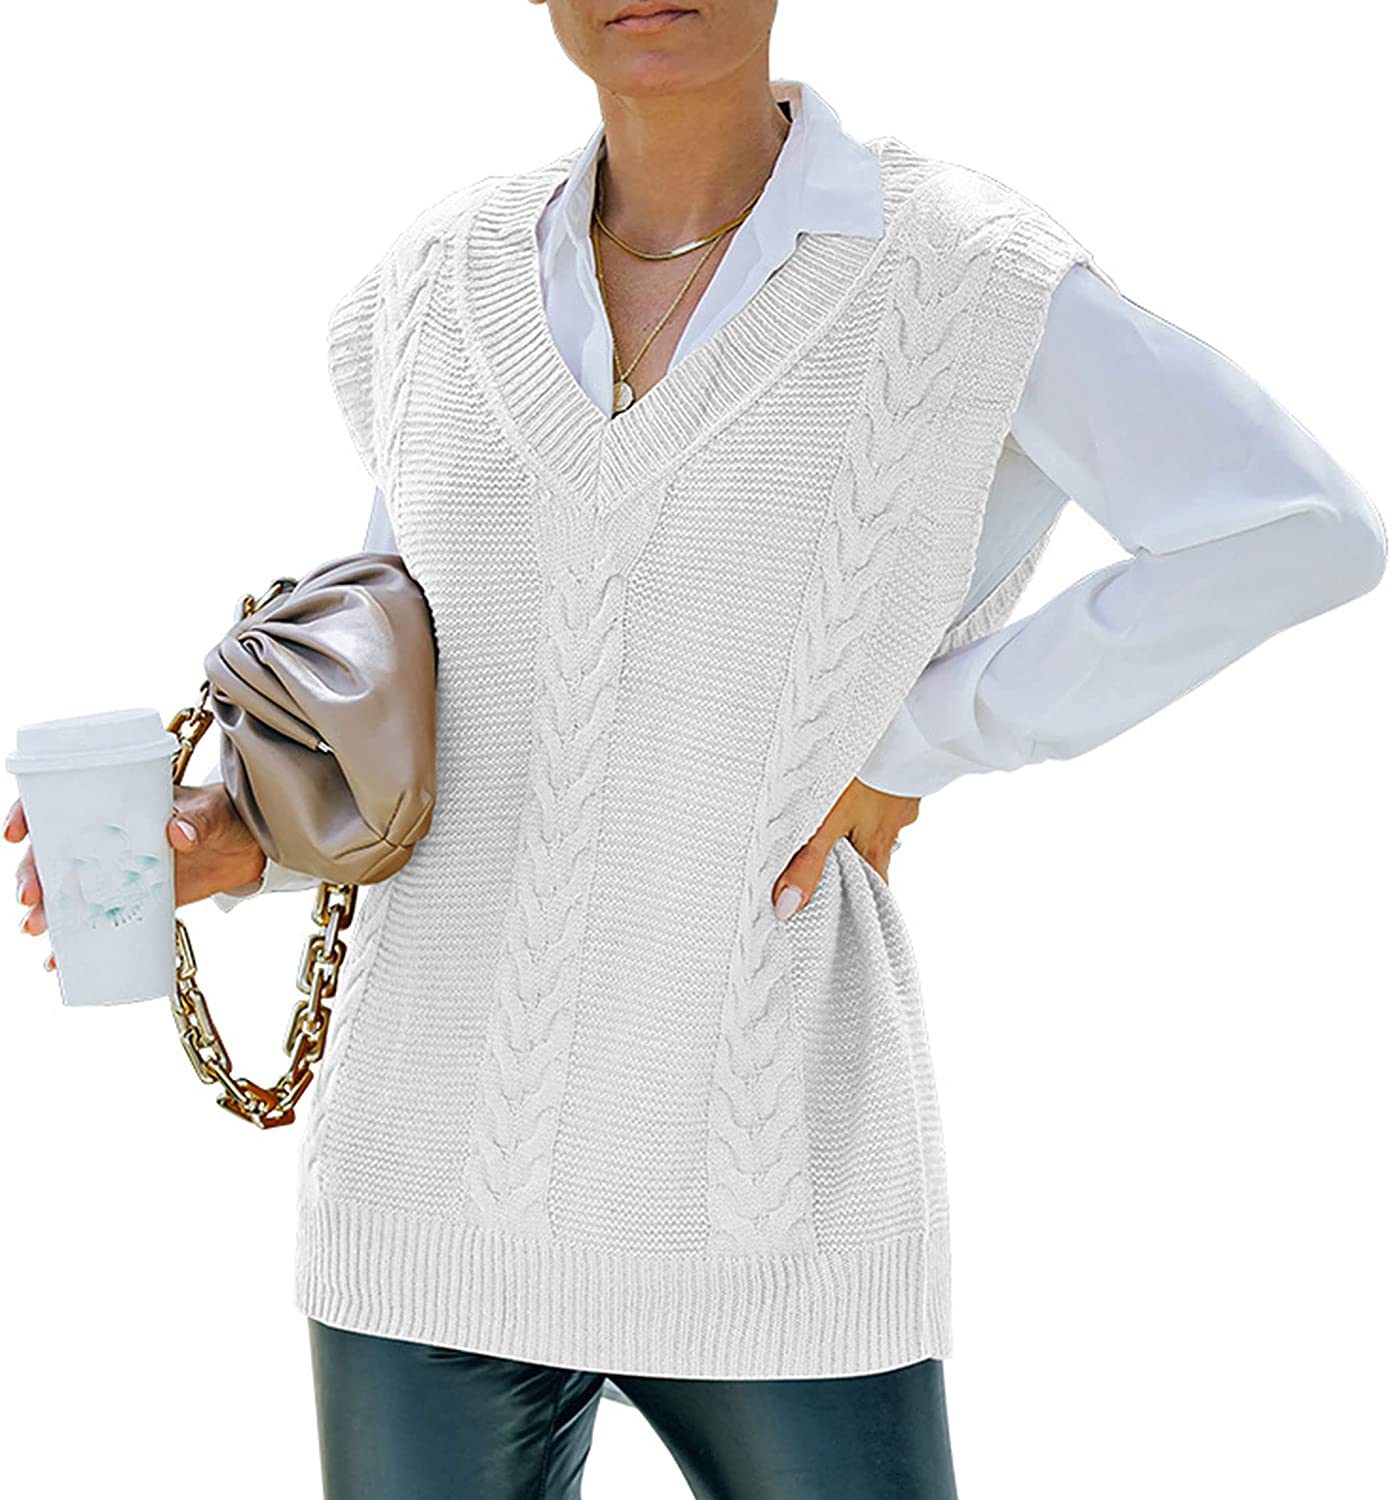 Zontroldy Womens V Neck Sweater Vest Oversized Knit Solid Color Sleeveless Pullover Tops